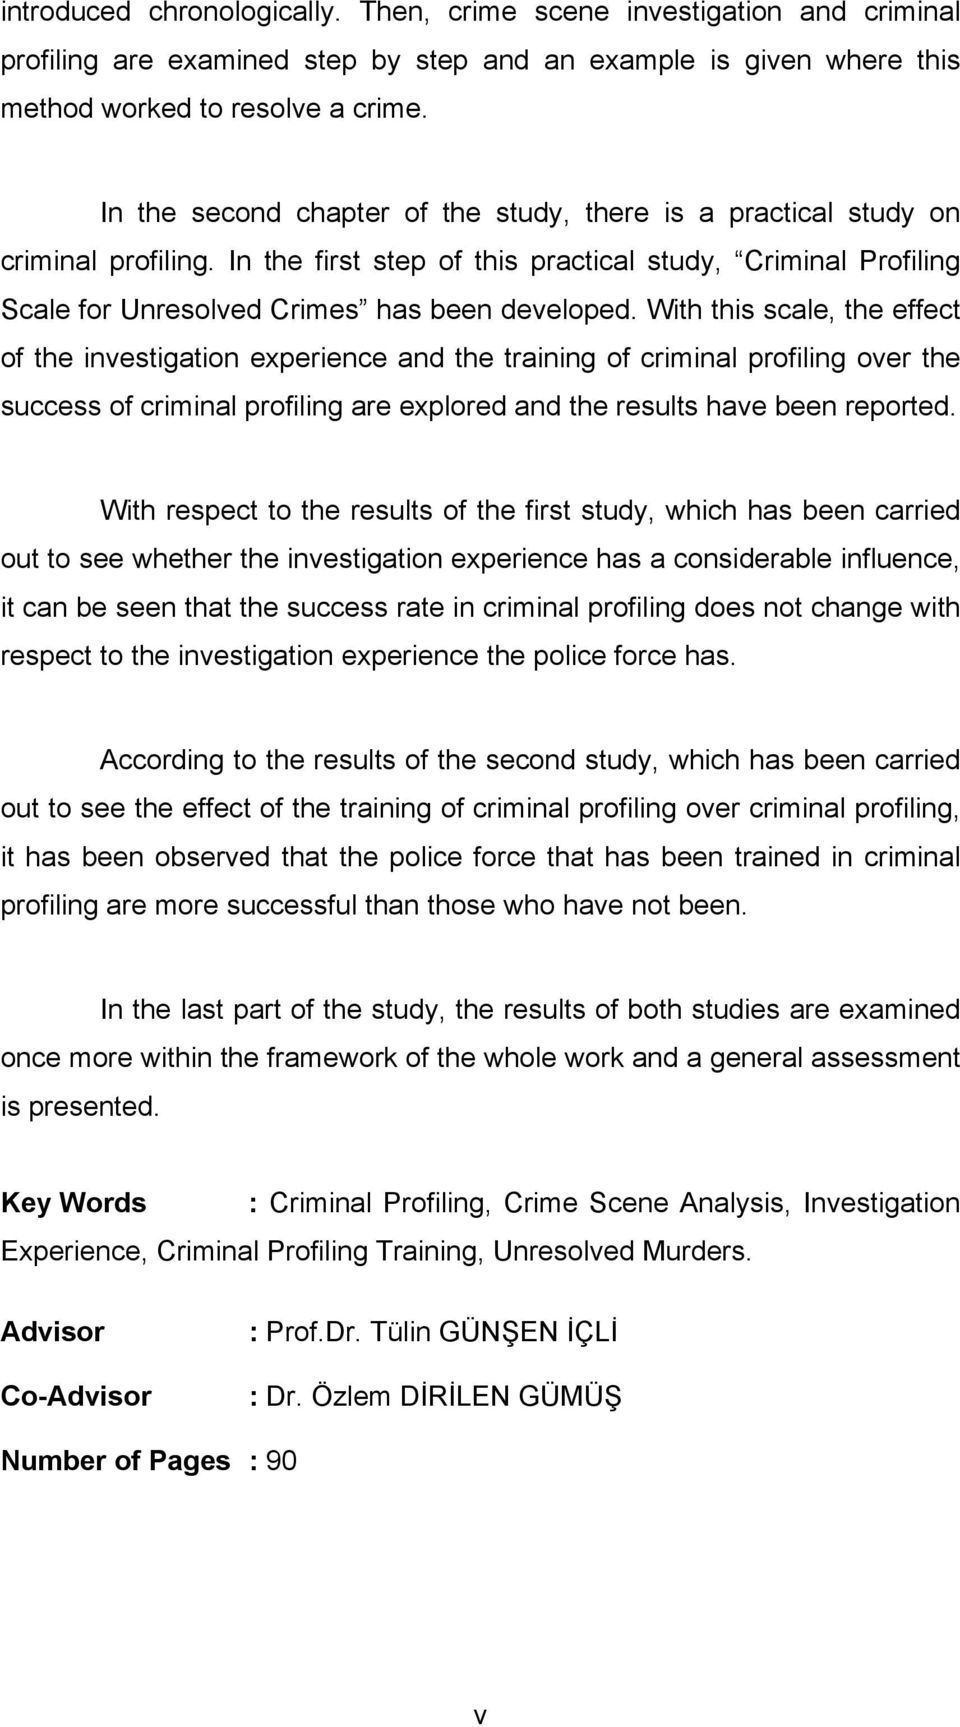 With this scale, the effect of the investigation experience and the training of criminal profiling over the success of criminal profiling are explored and the results have been reported.